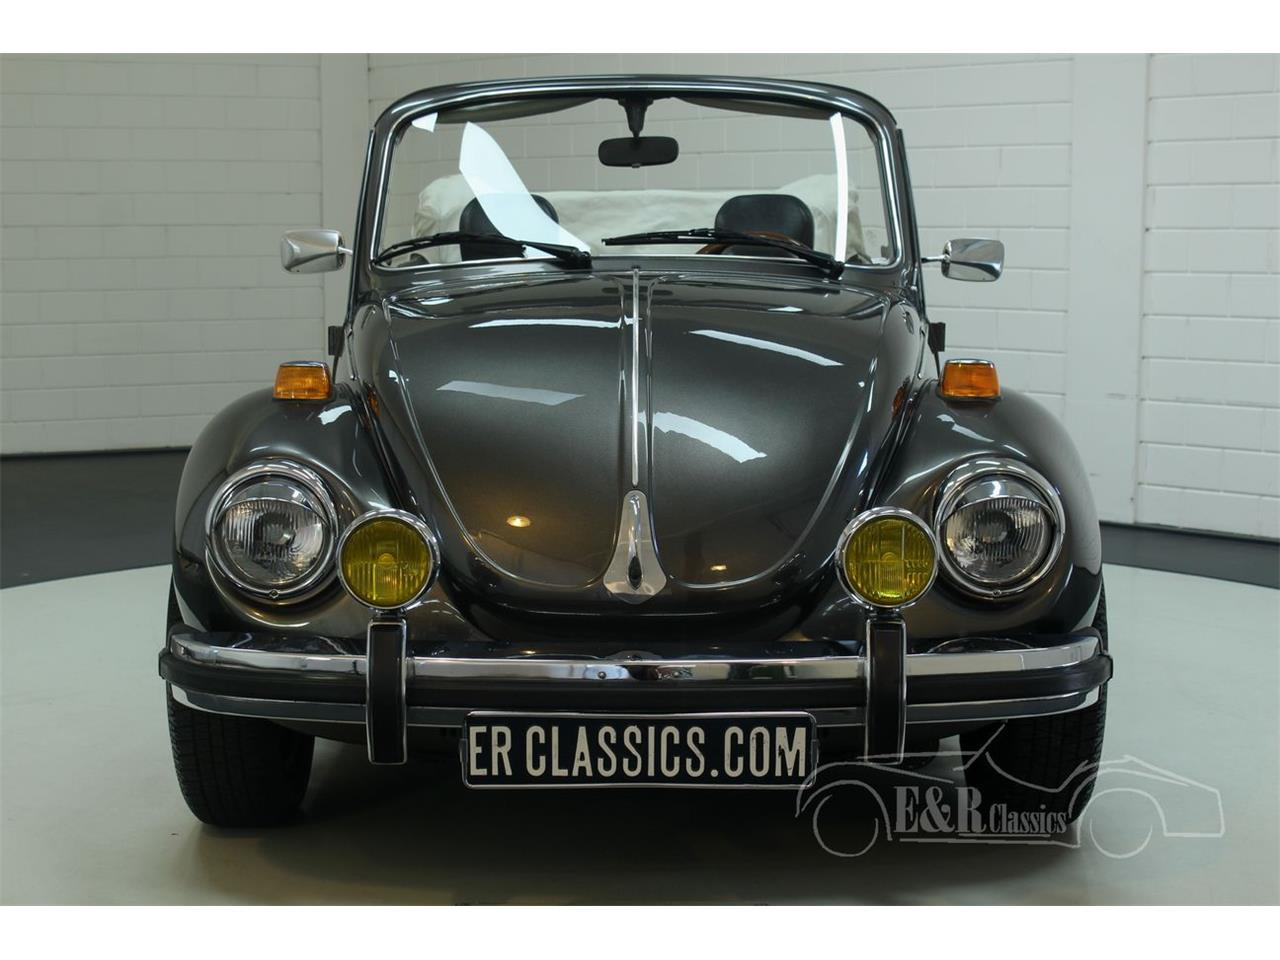 Large Picture of 1979 Volkswagen Beetle located in Noord-Brabant - $29,000.00 Offered by E & R Classics - OICV